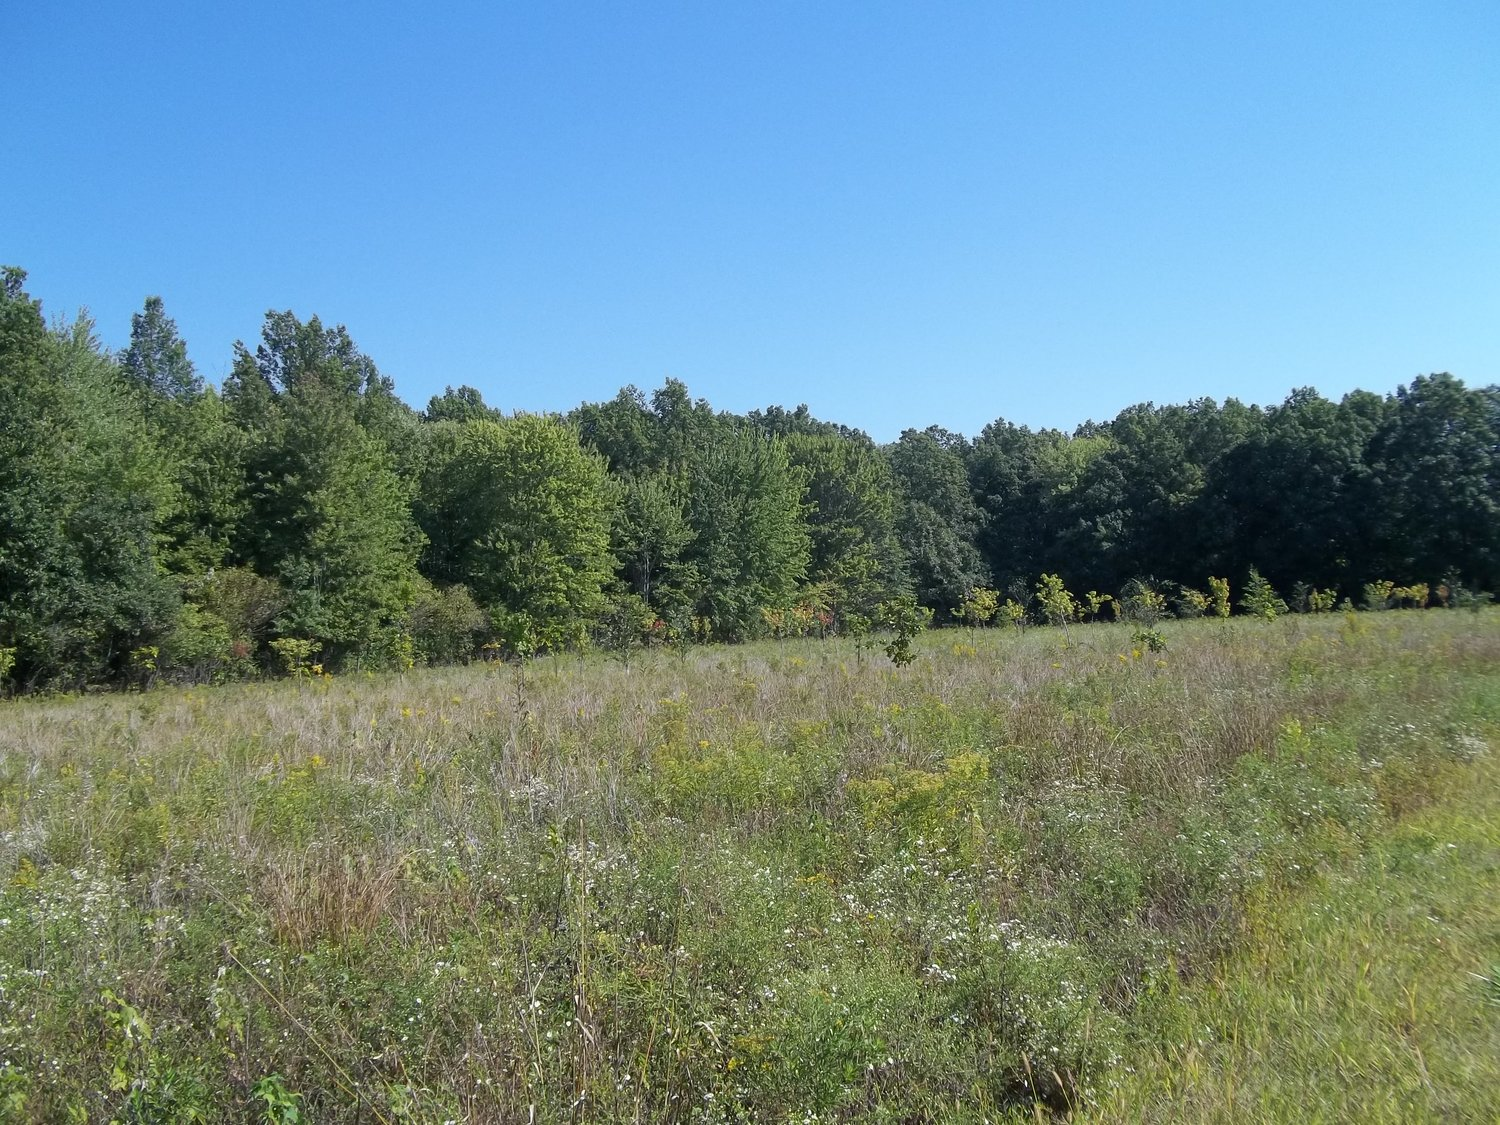 - Visit the project overview page for more details on Oberlin College's afforestation efforts of agricultural land in the North Fields area near campus.